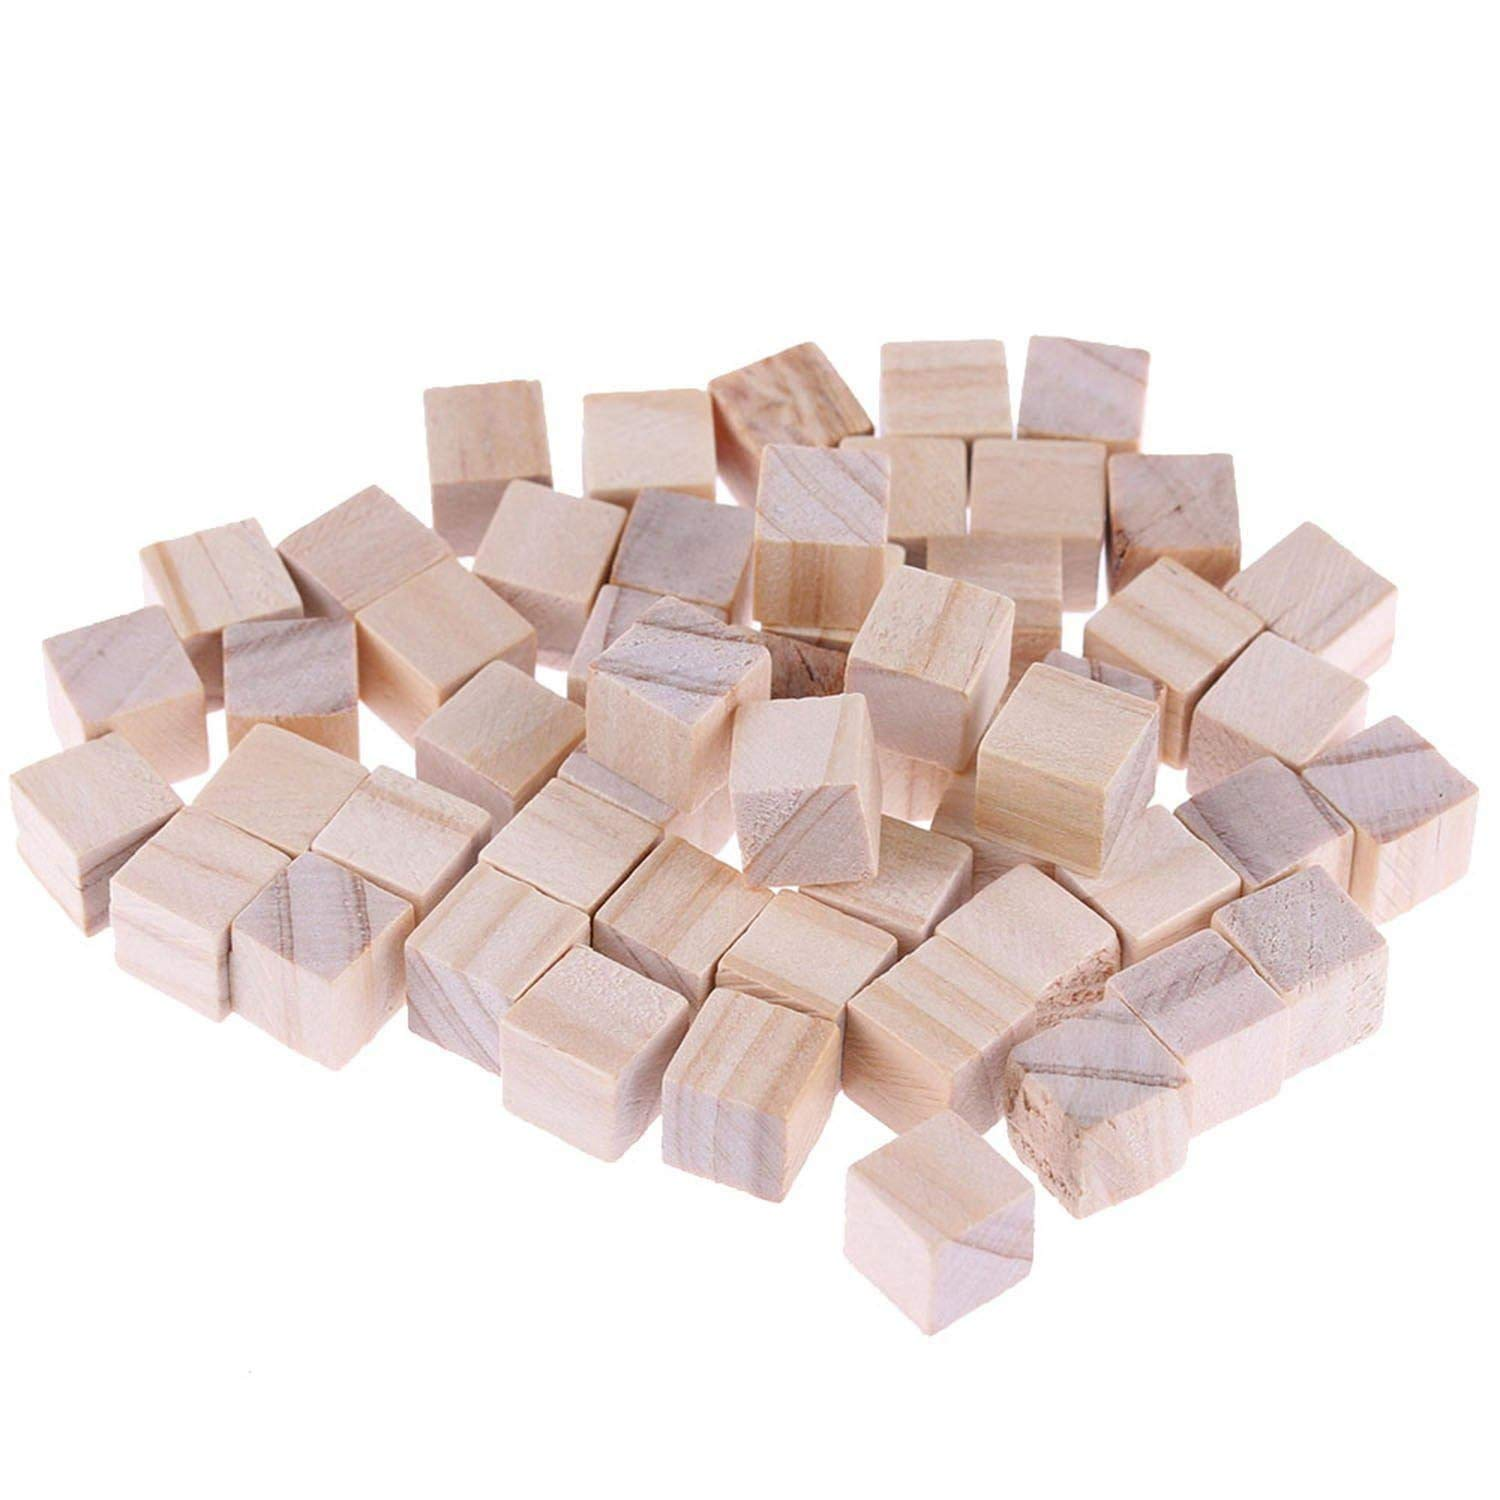 Ireav Wooden Craft Cubes - Mini Wooden Art Craft Stacking Cubes Blocks / Unfinished Natural Wood / - 25 Pack / 2 Centimeter